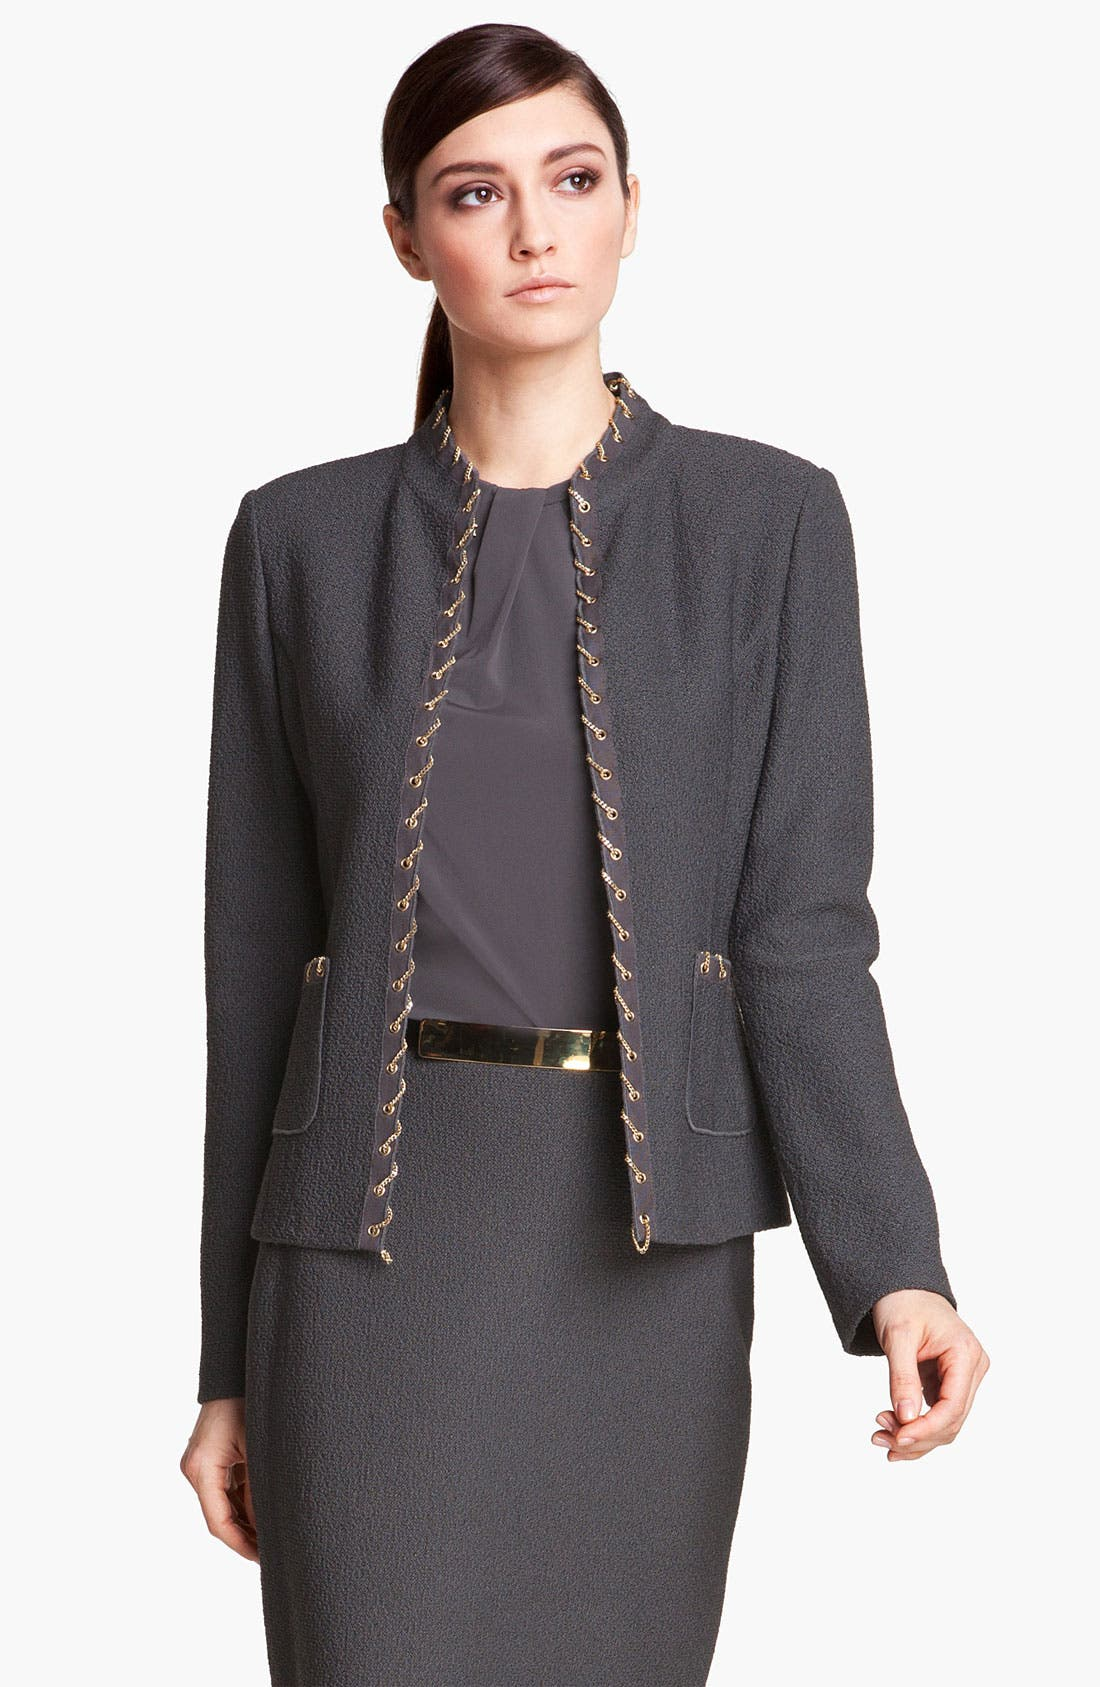 Main Image - St. John Collection Chain Trim Bouclé Jacket